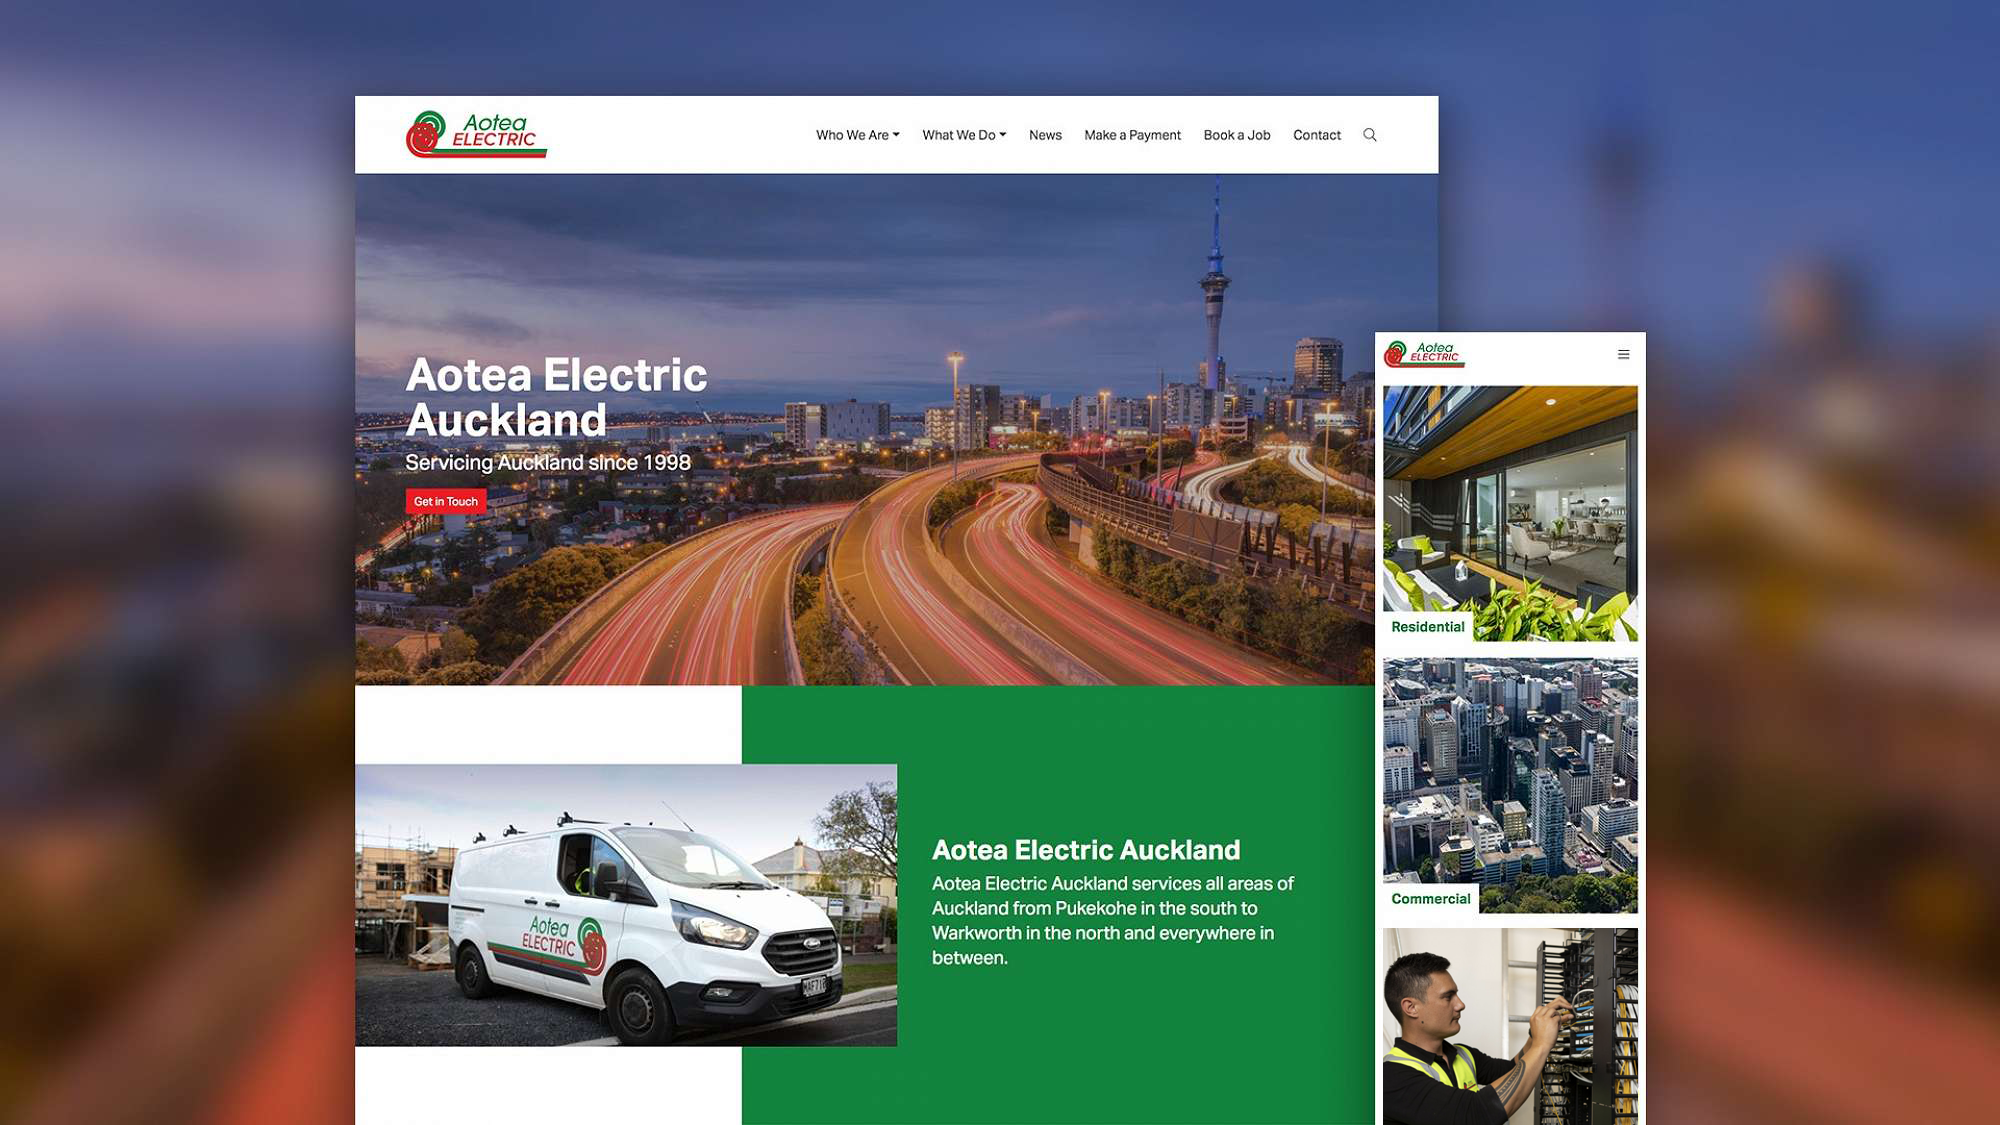 Aotea Electric Auckland Launches Comprehensive New Website